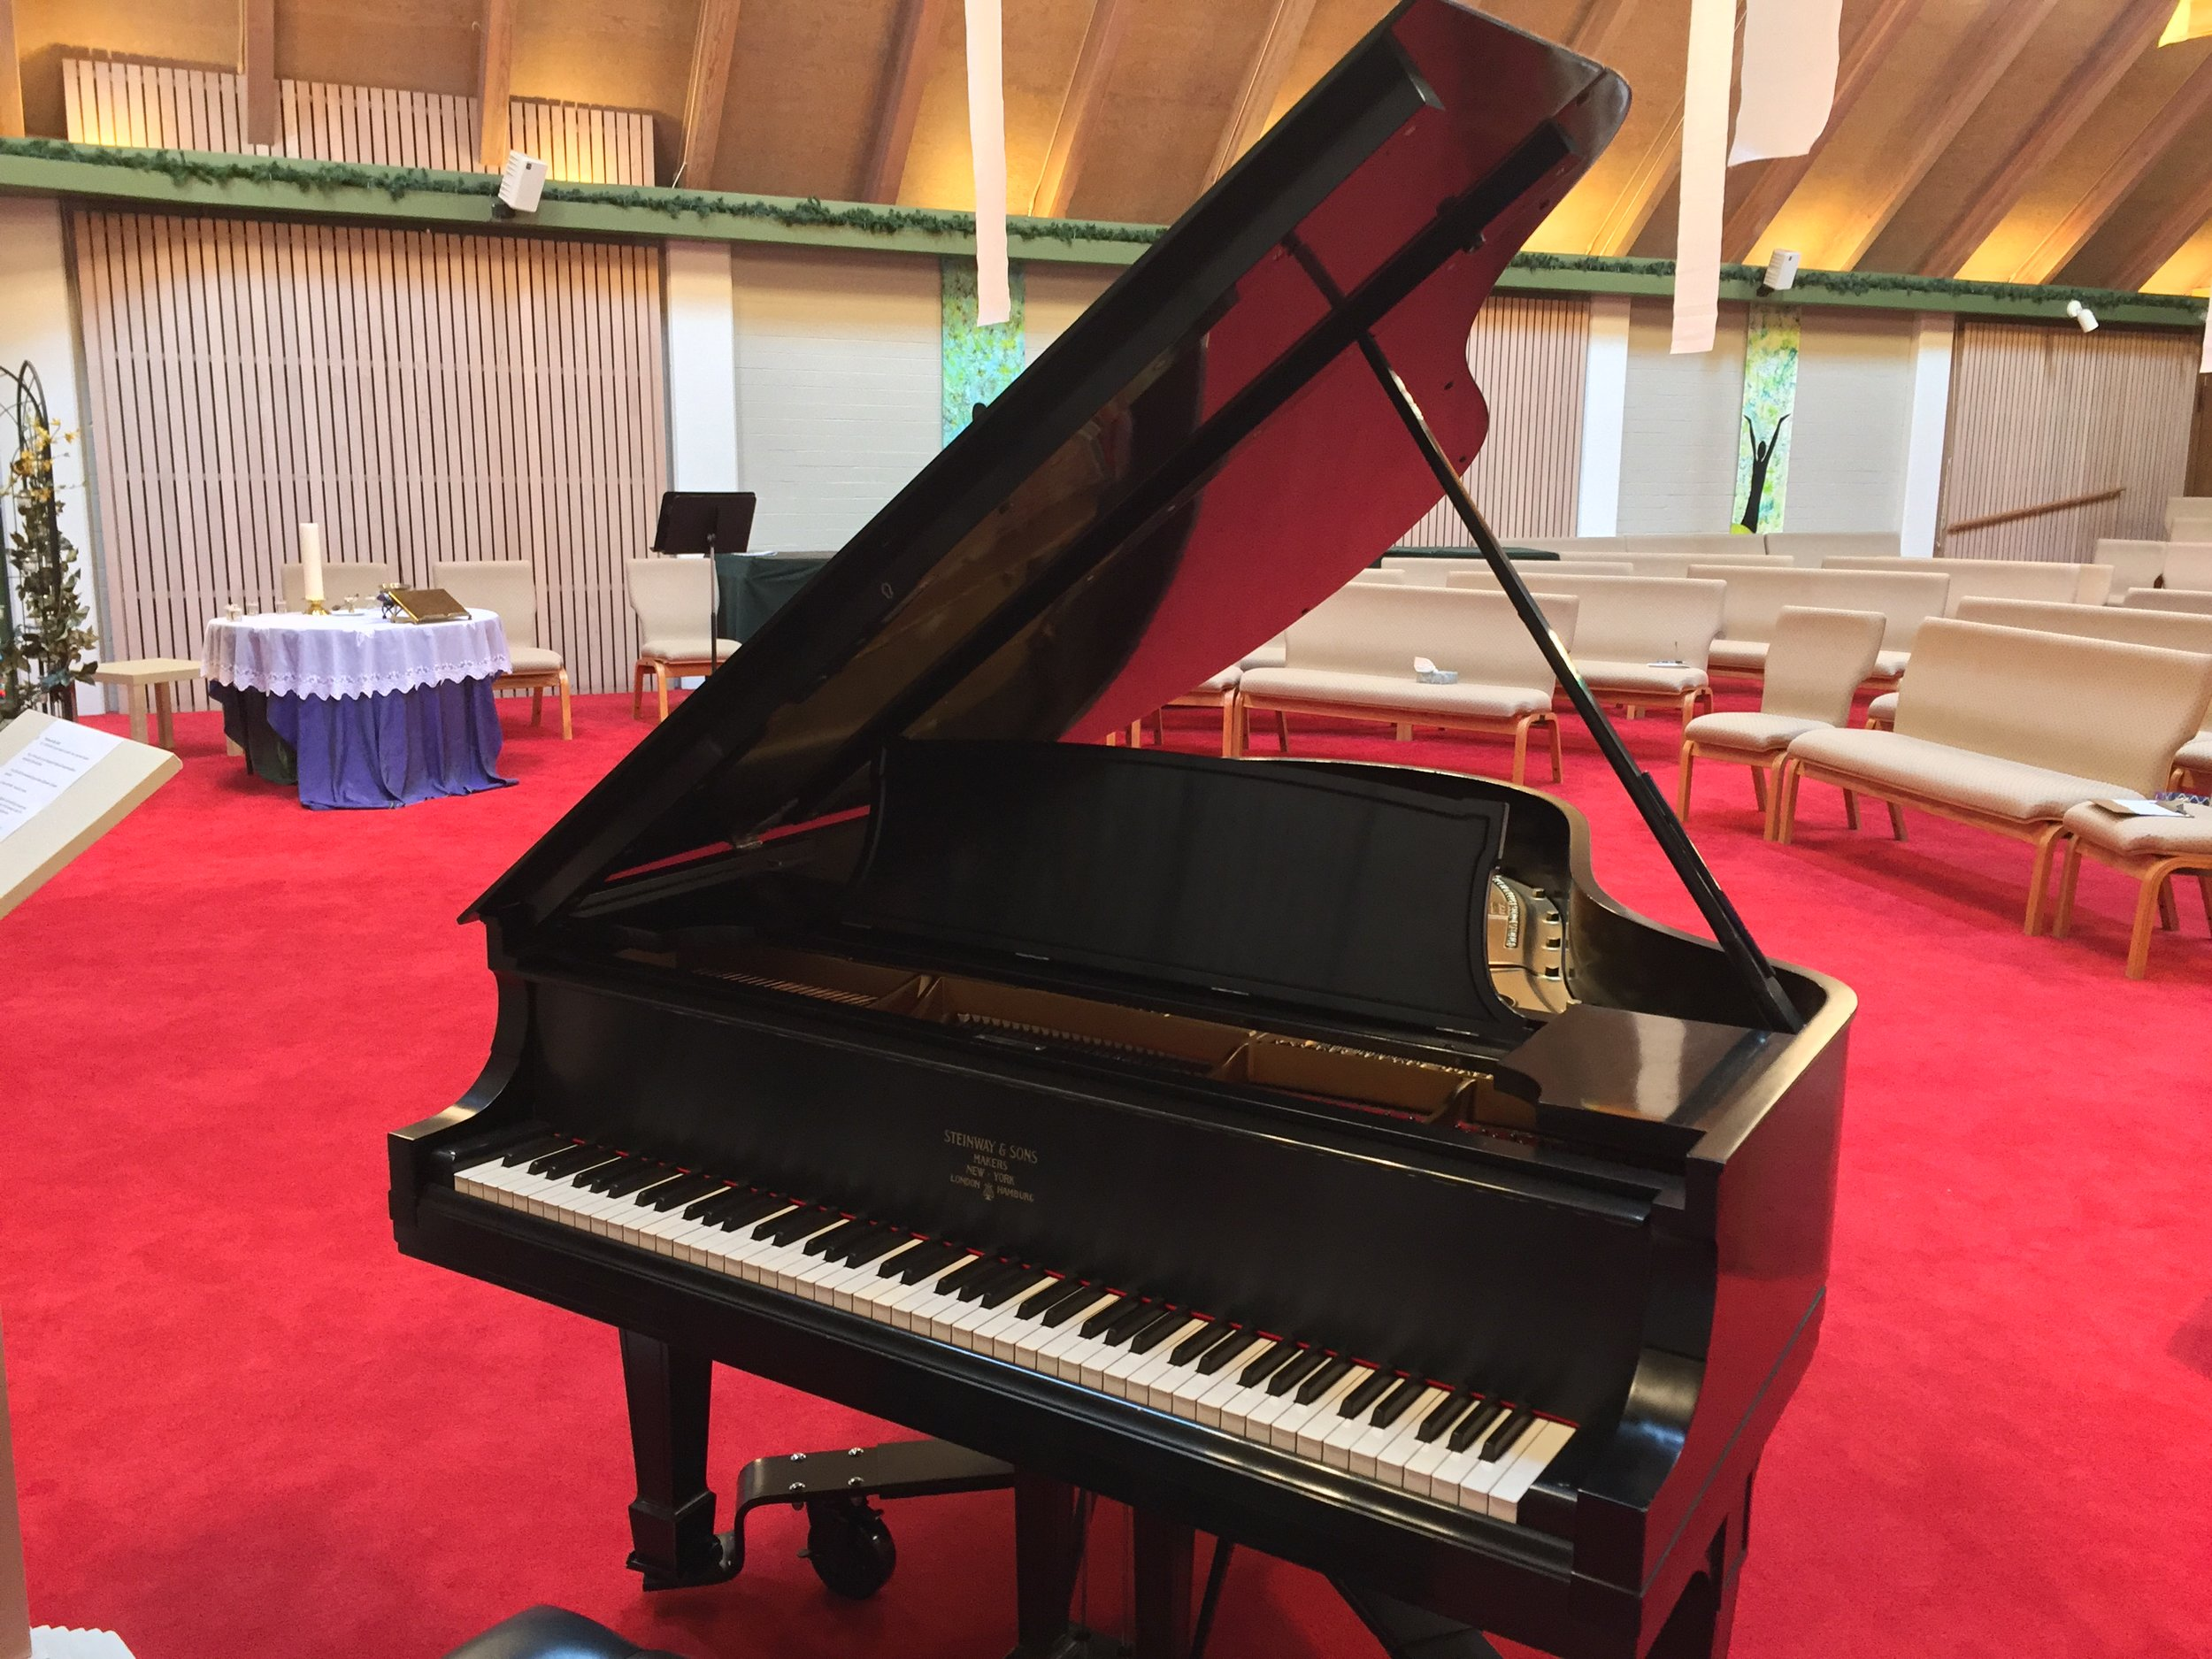 Our Pianos - Our beautiful Steinway Baby Grand piano is available to our renters for concerts & entertaining. Two upright pianos are available for our smaller rooms.